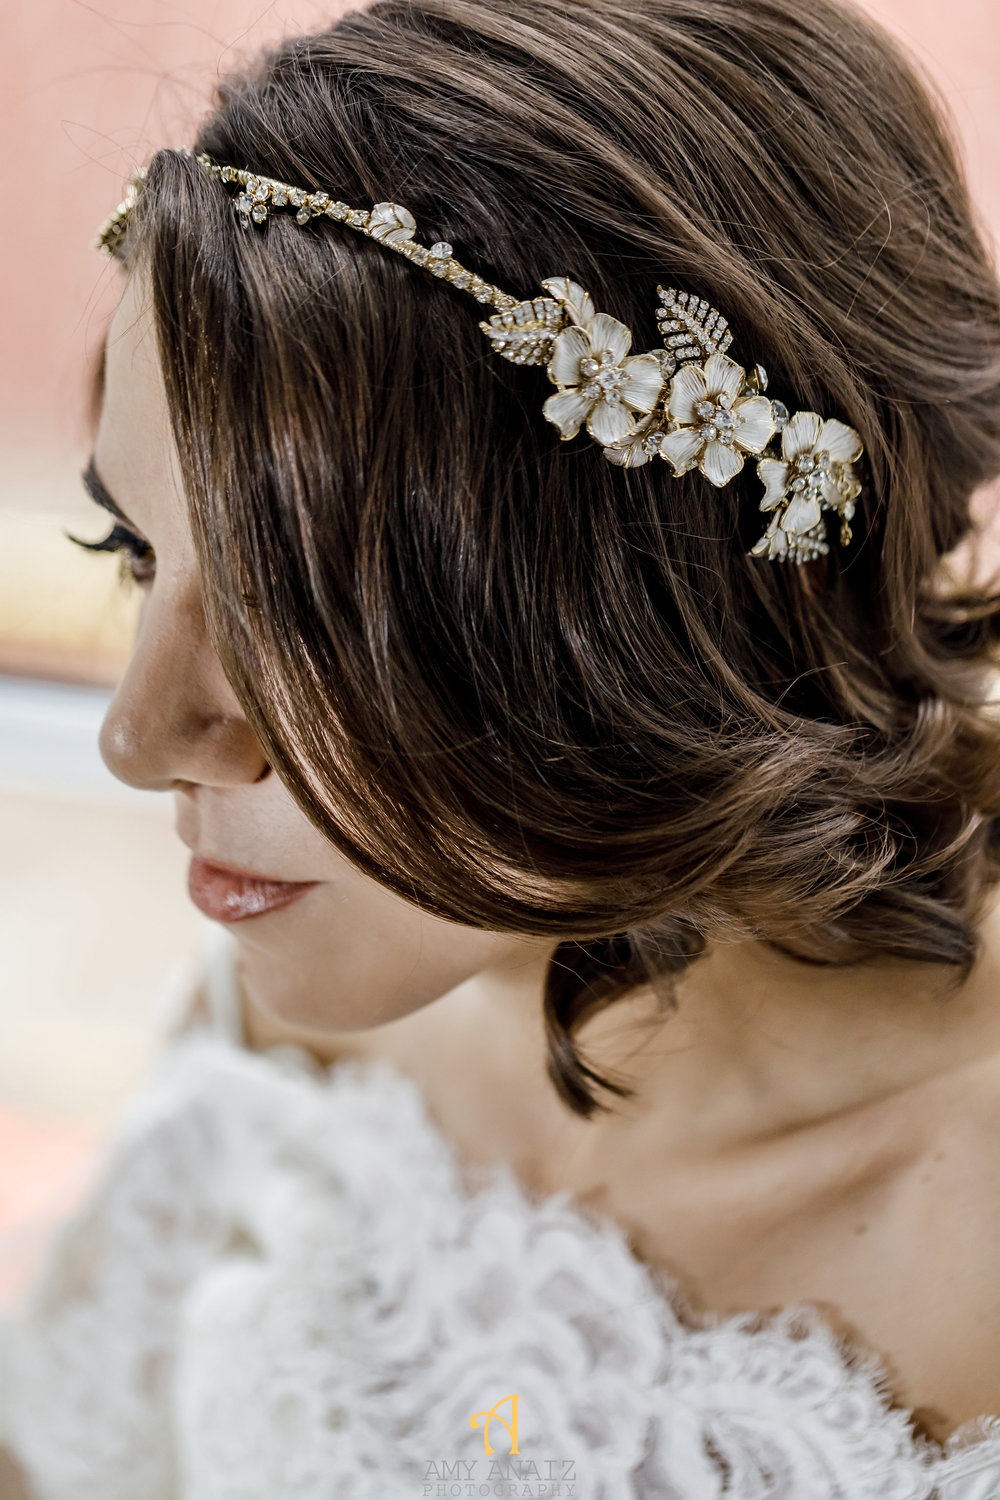 Happily Ever Borrowed Amy Anaiz Asymmetrical Floral and Crystal Swag Headpiece